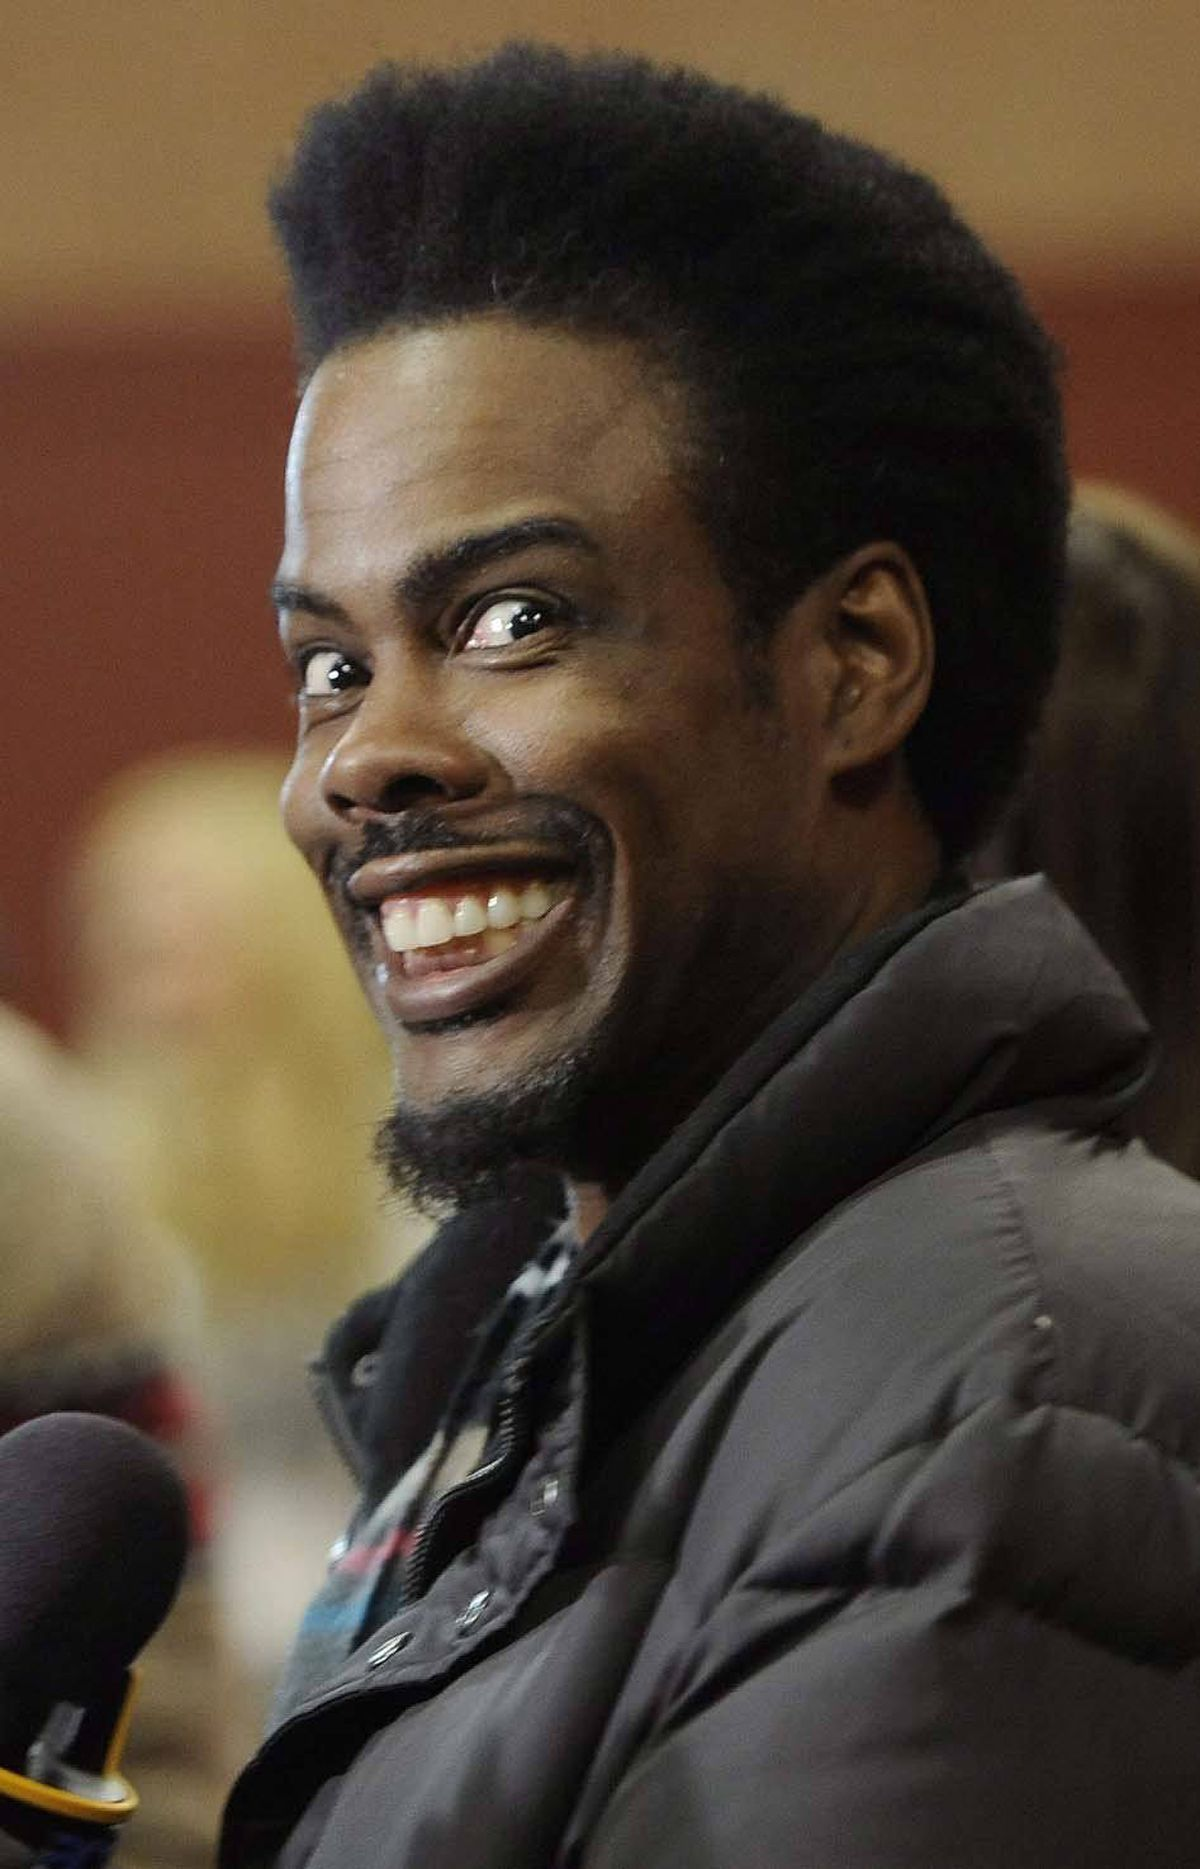 Chris Rock contributes generously to our regularly scheduled inanity at the Sundance Film Festival in Utah on Monday.